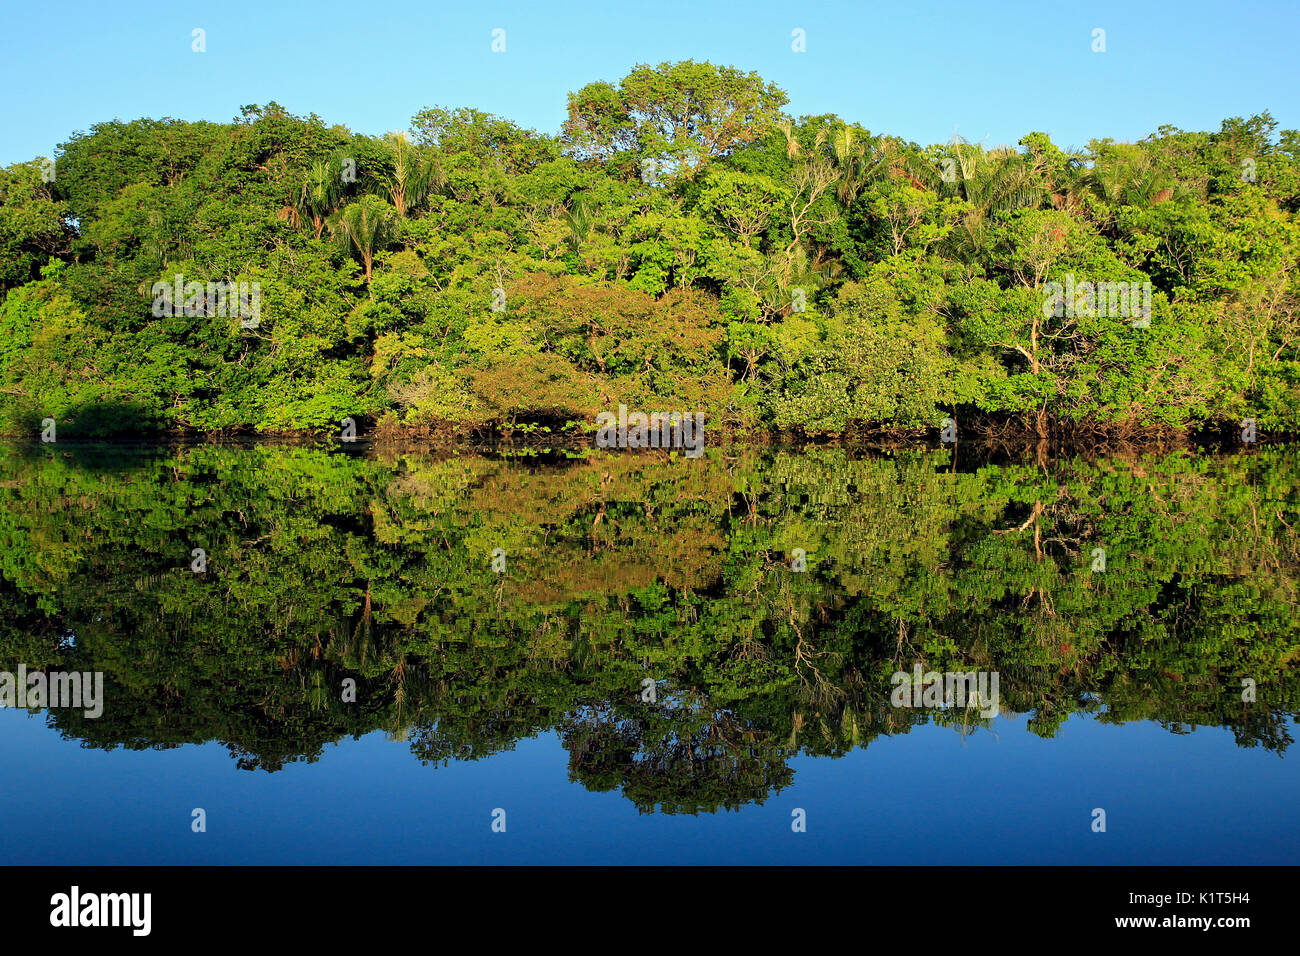 The Amazon Rainforest and Blue Sky Perfectly Mirrored in the Water. Amazonas, Brazil - Stock Image